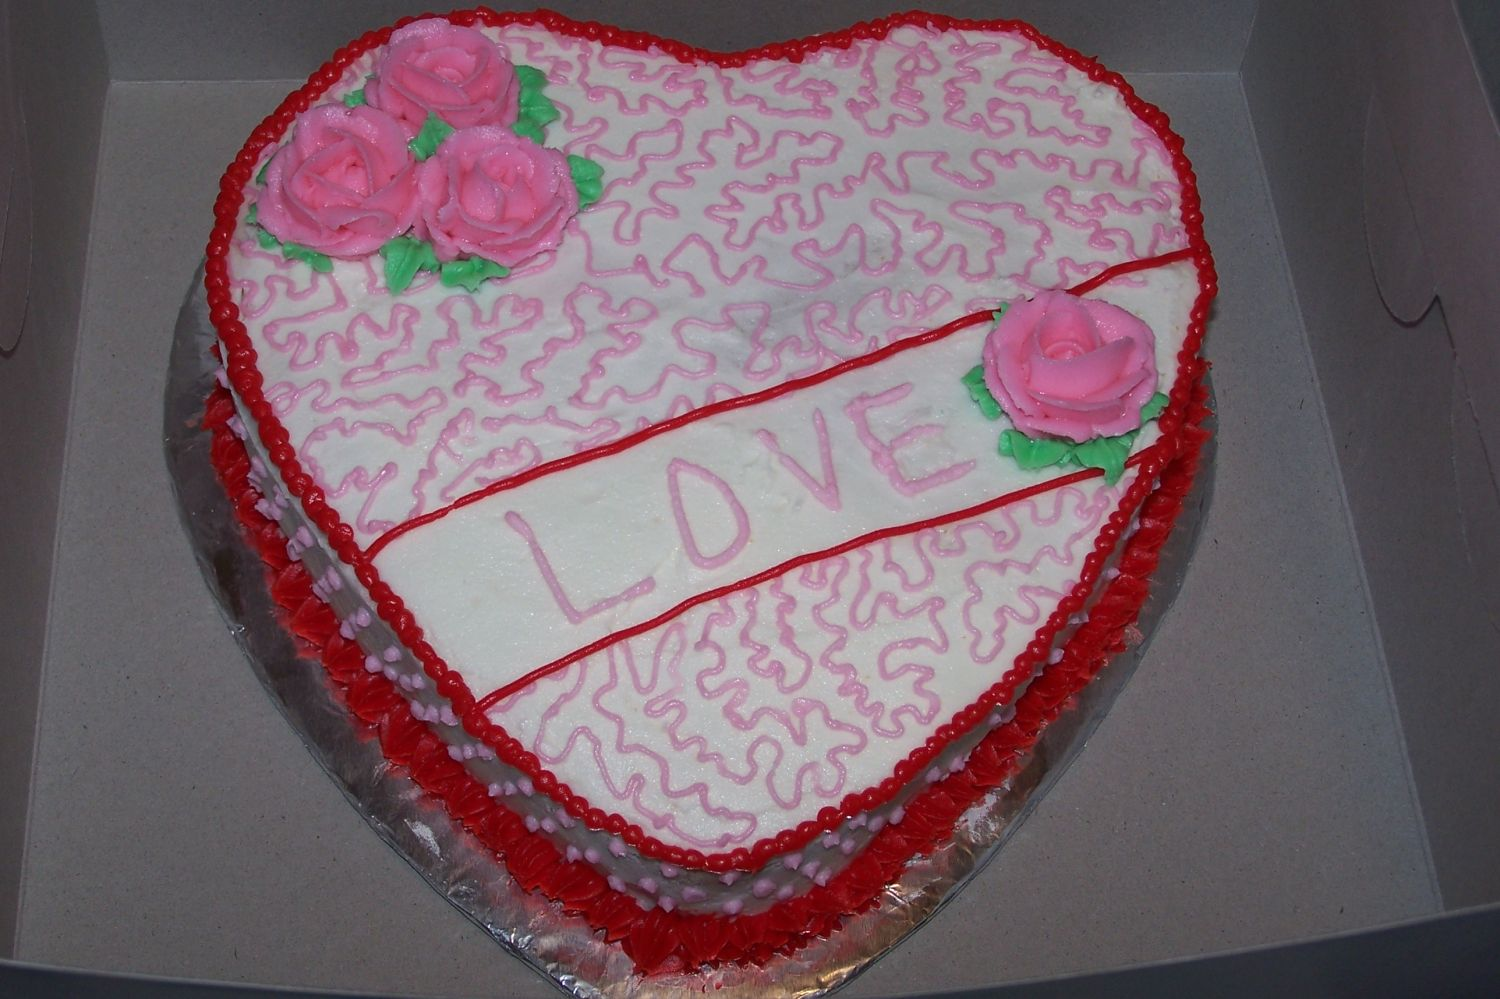 My first decorated Valentine's Day cake (I've been decorating for 3 months).  All buttercream icing.